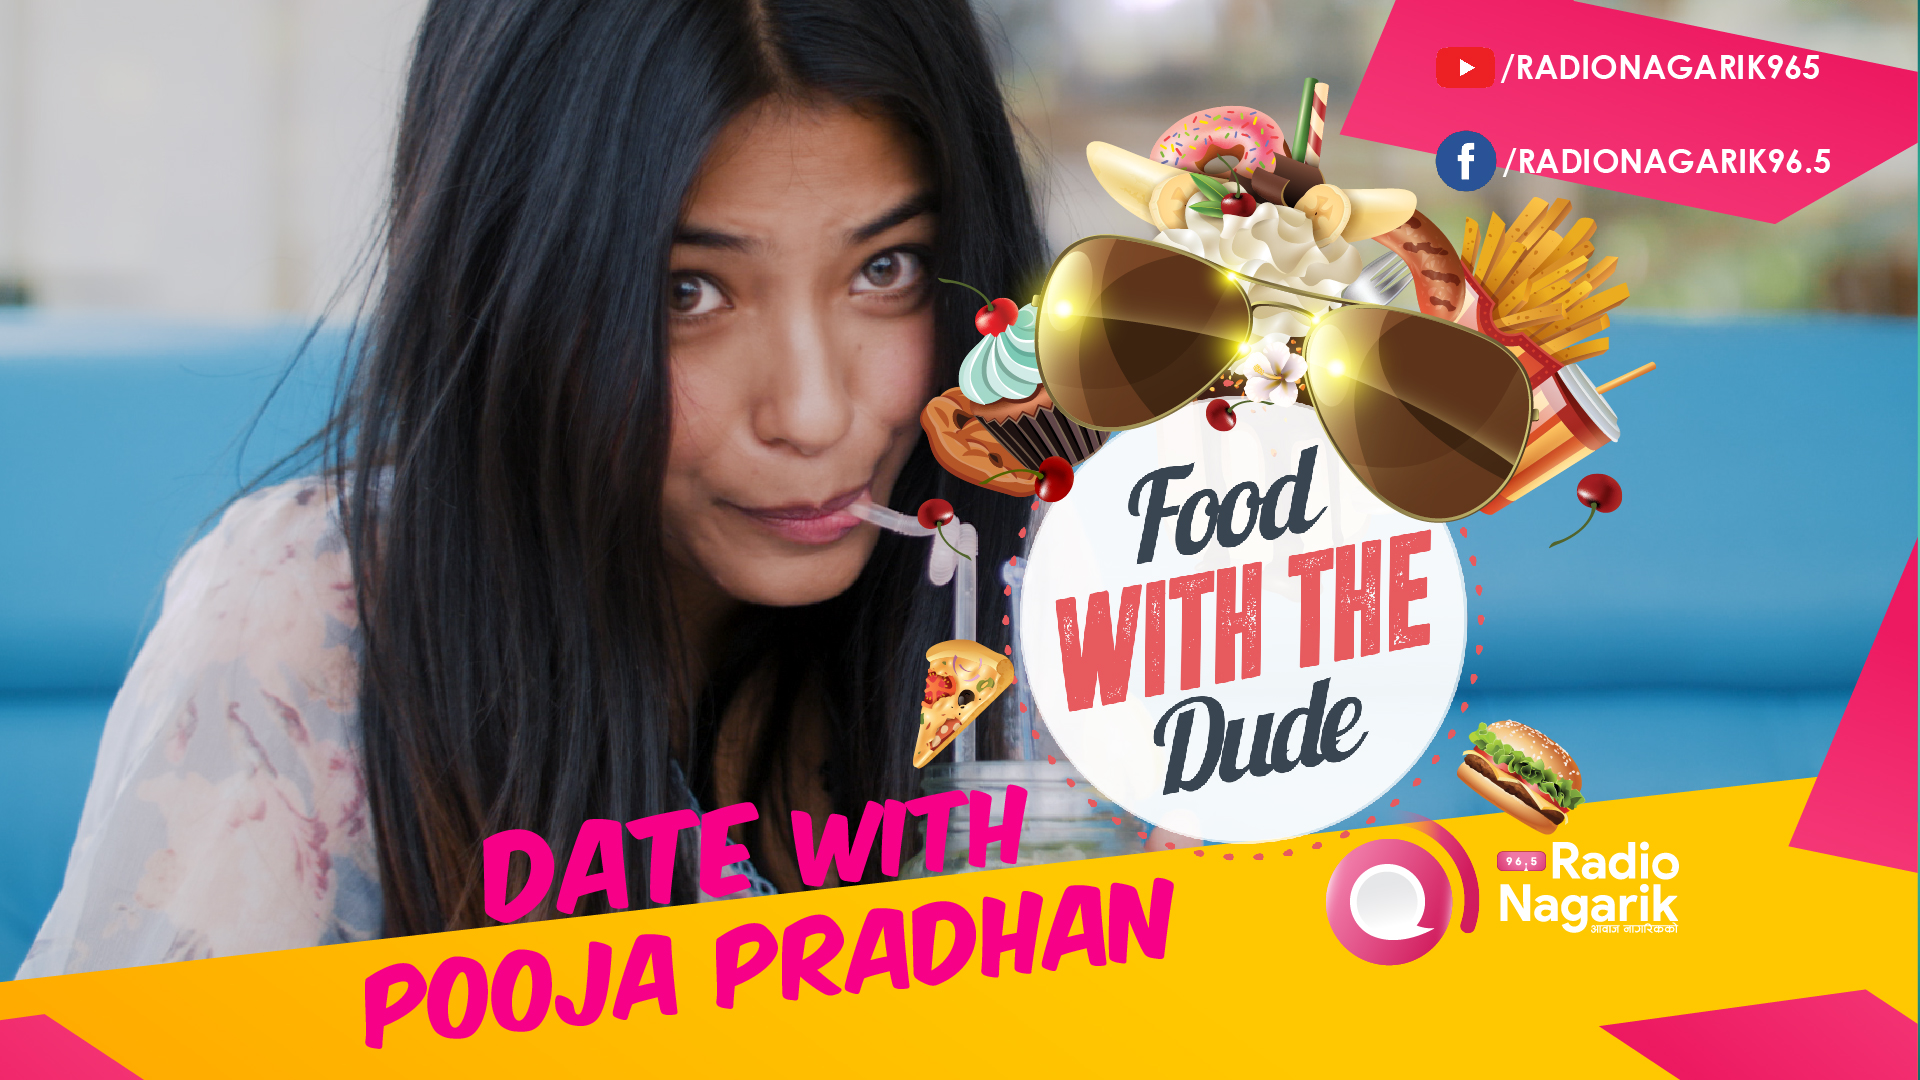 Date with POOJA PRADHAN | Tips for Bali Vacation & more - DATE 10 | Food With The Dude